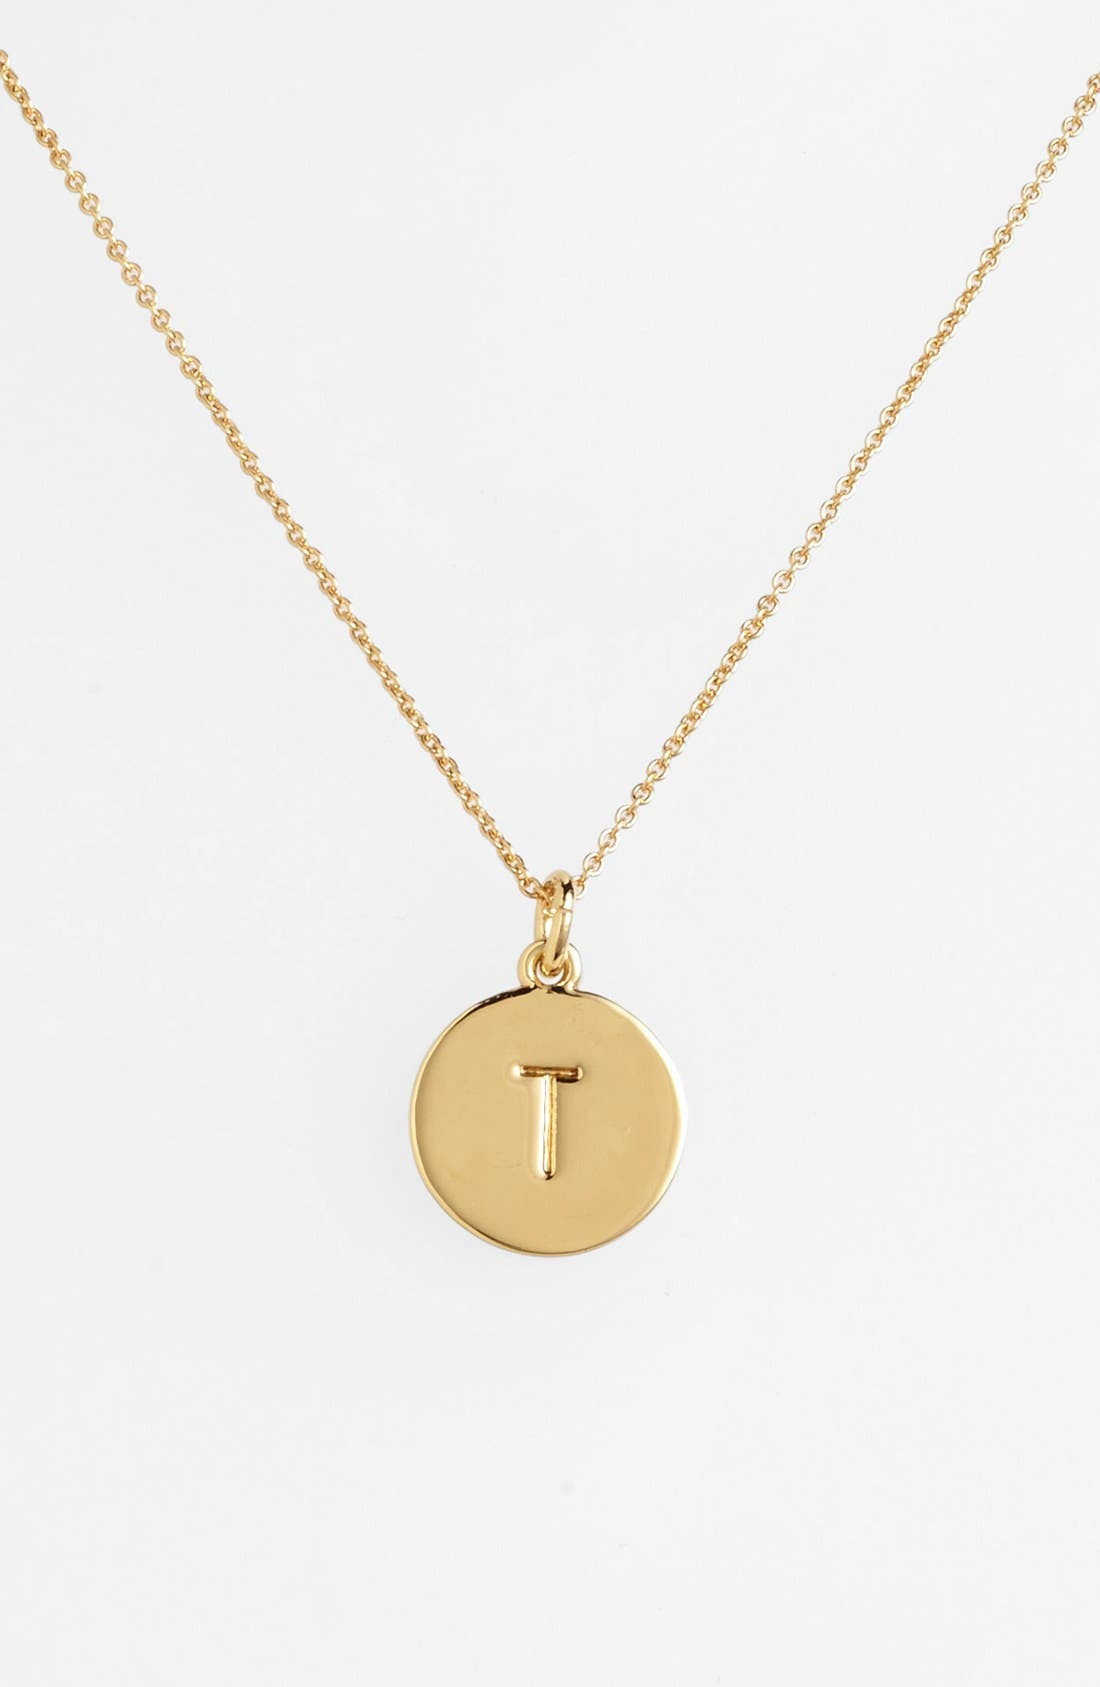 Personalized gifts Disc pendant necklace